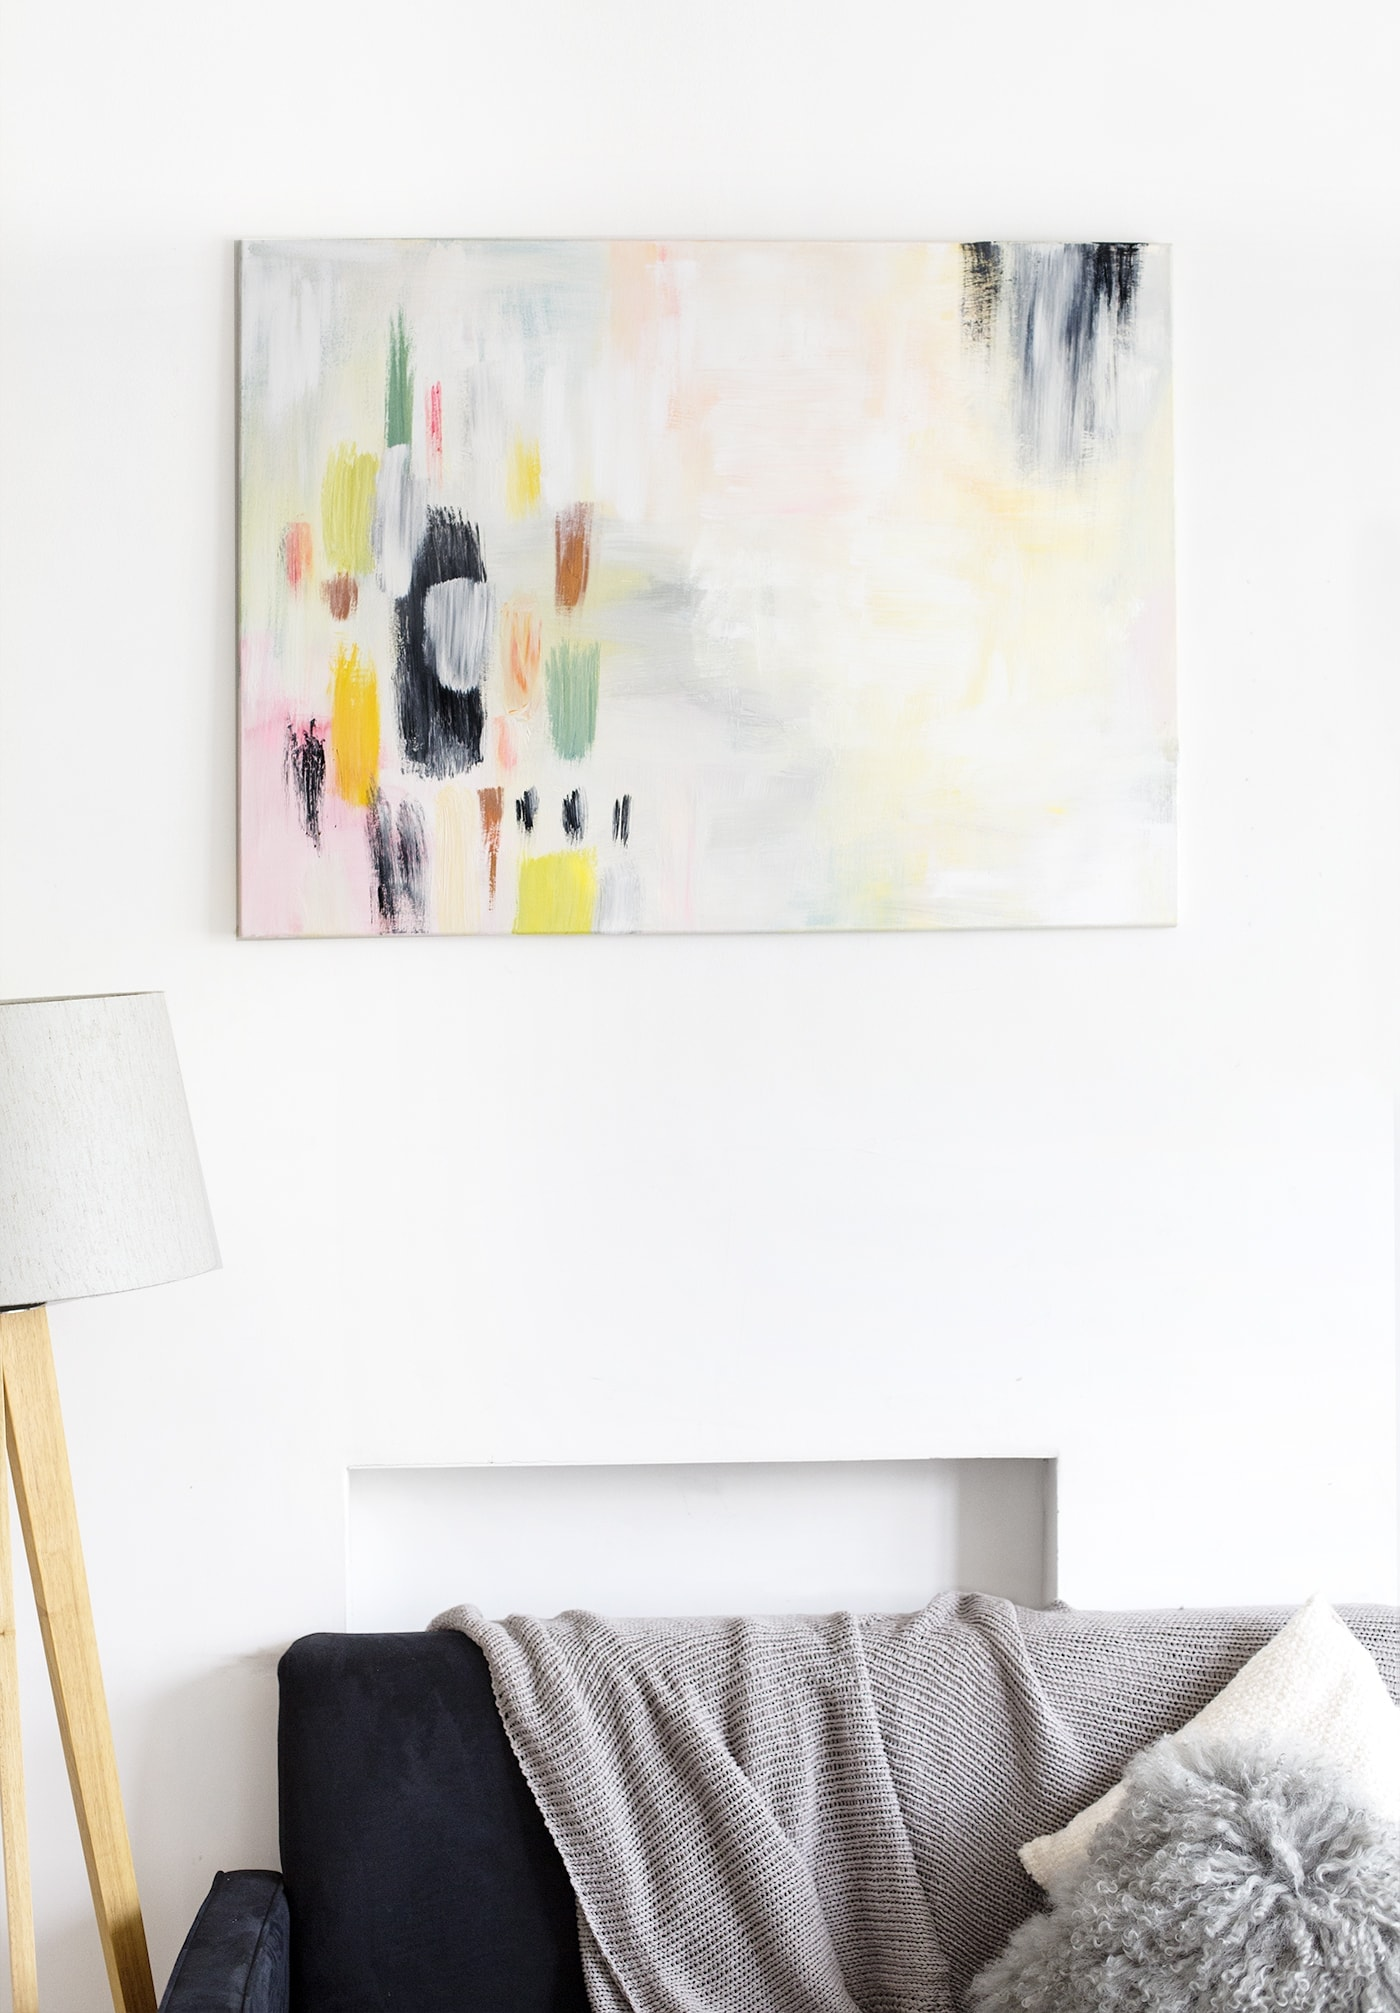 hanging-art-in-the-home-affordable-art-fair